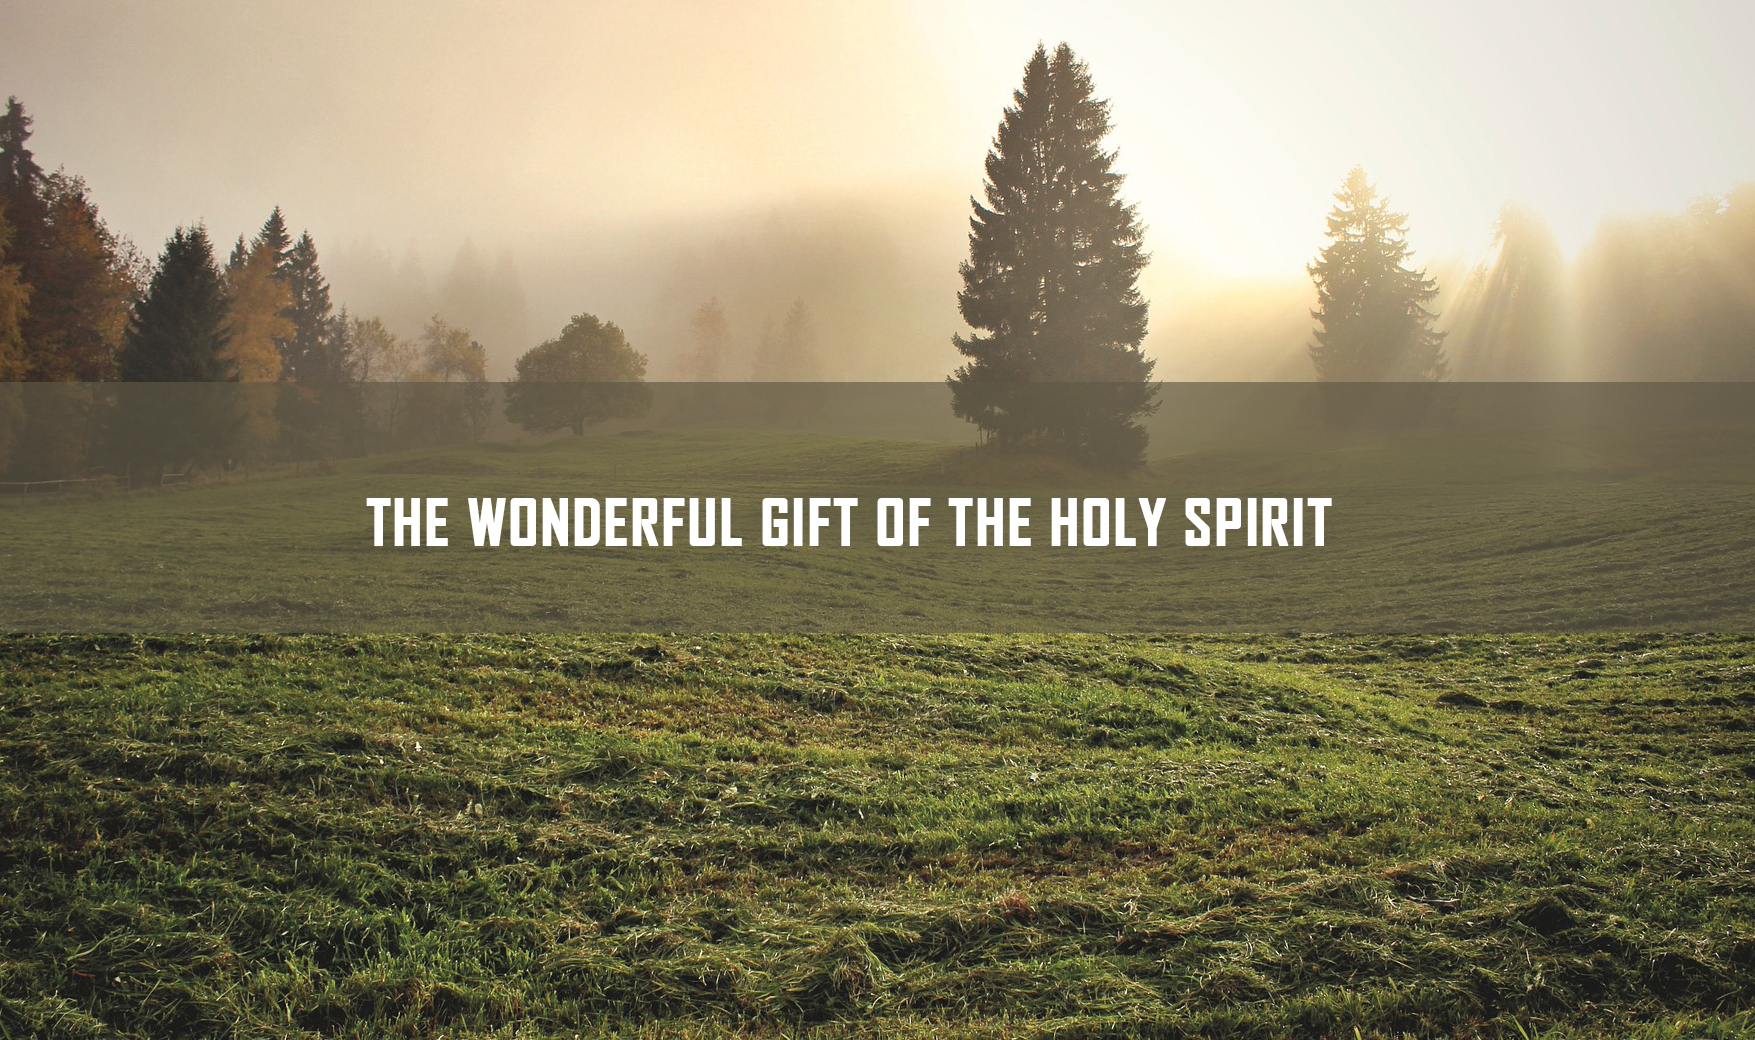 THE WONDERFUL GIFT OF THE HOLY SPIRIT <br/> SUNIL ABRAHAM